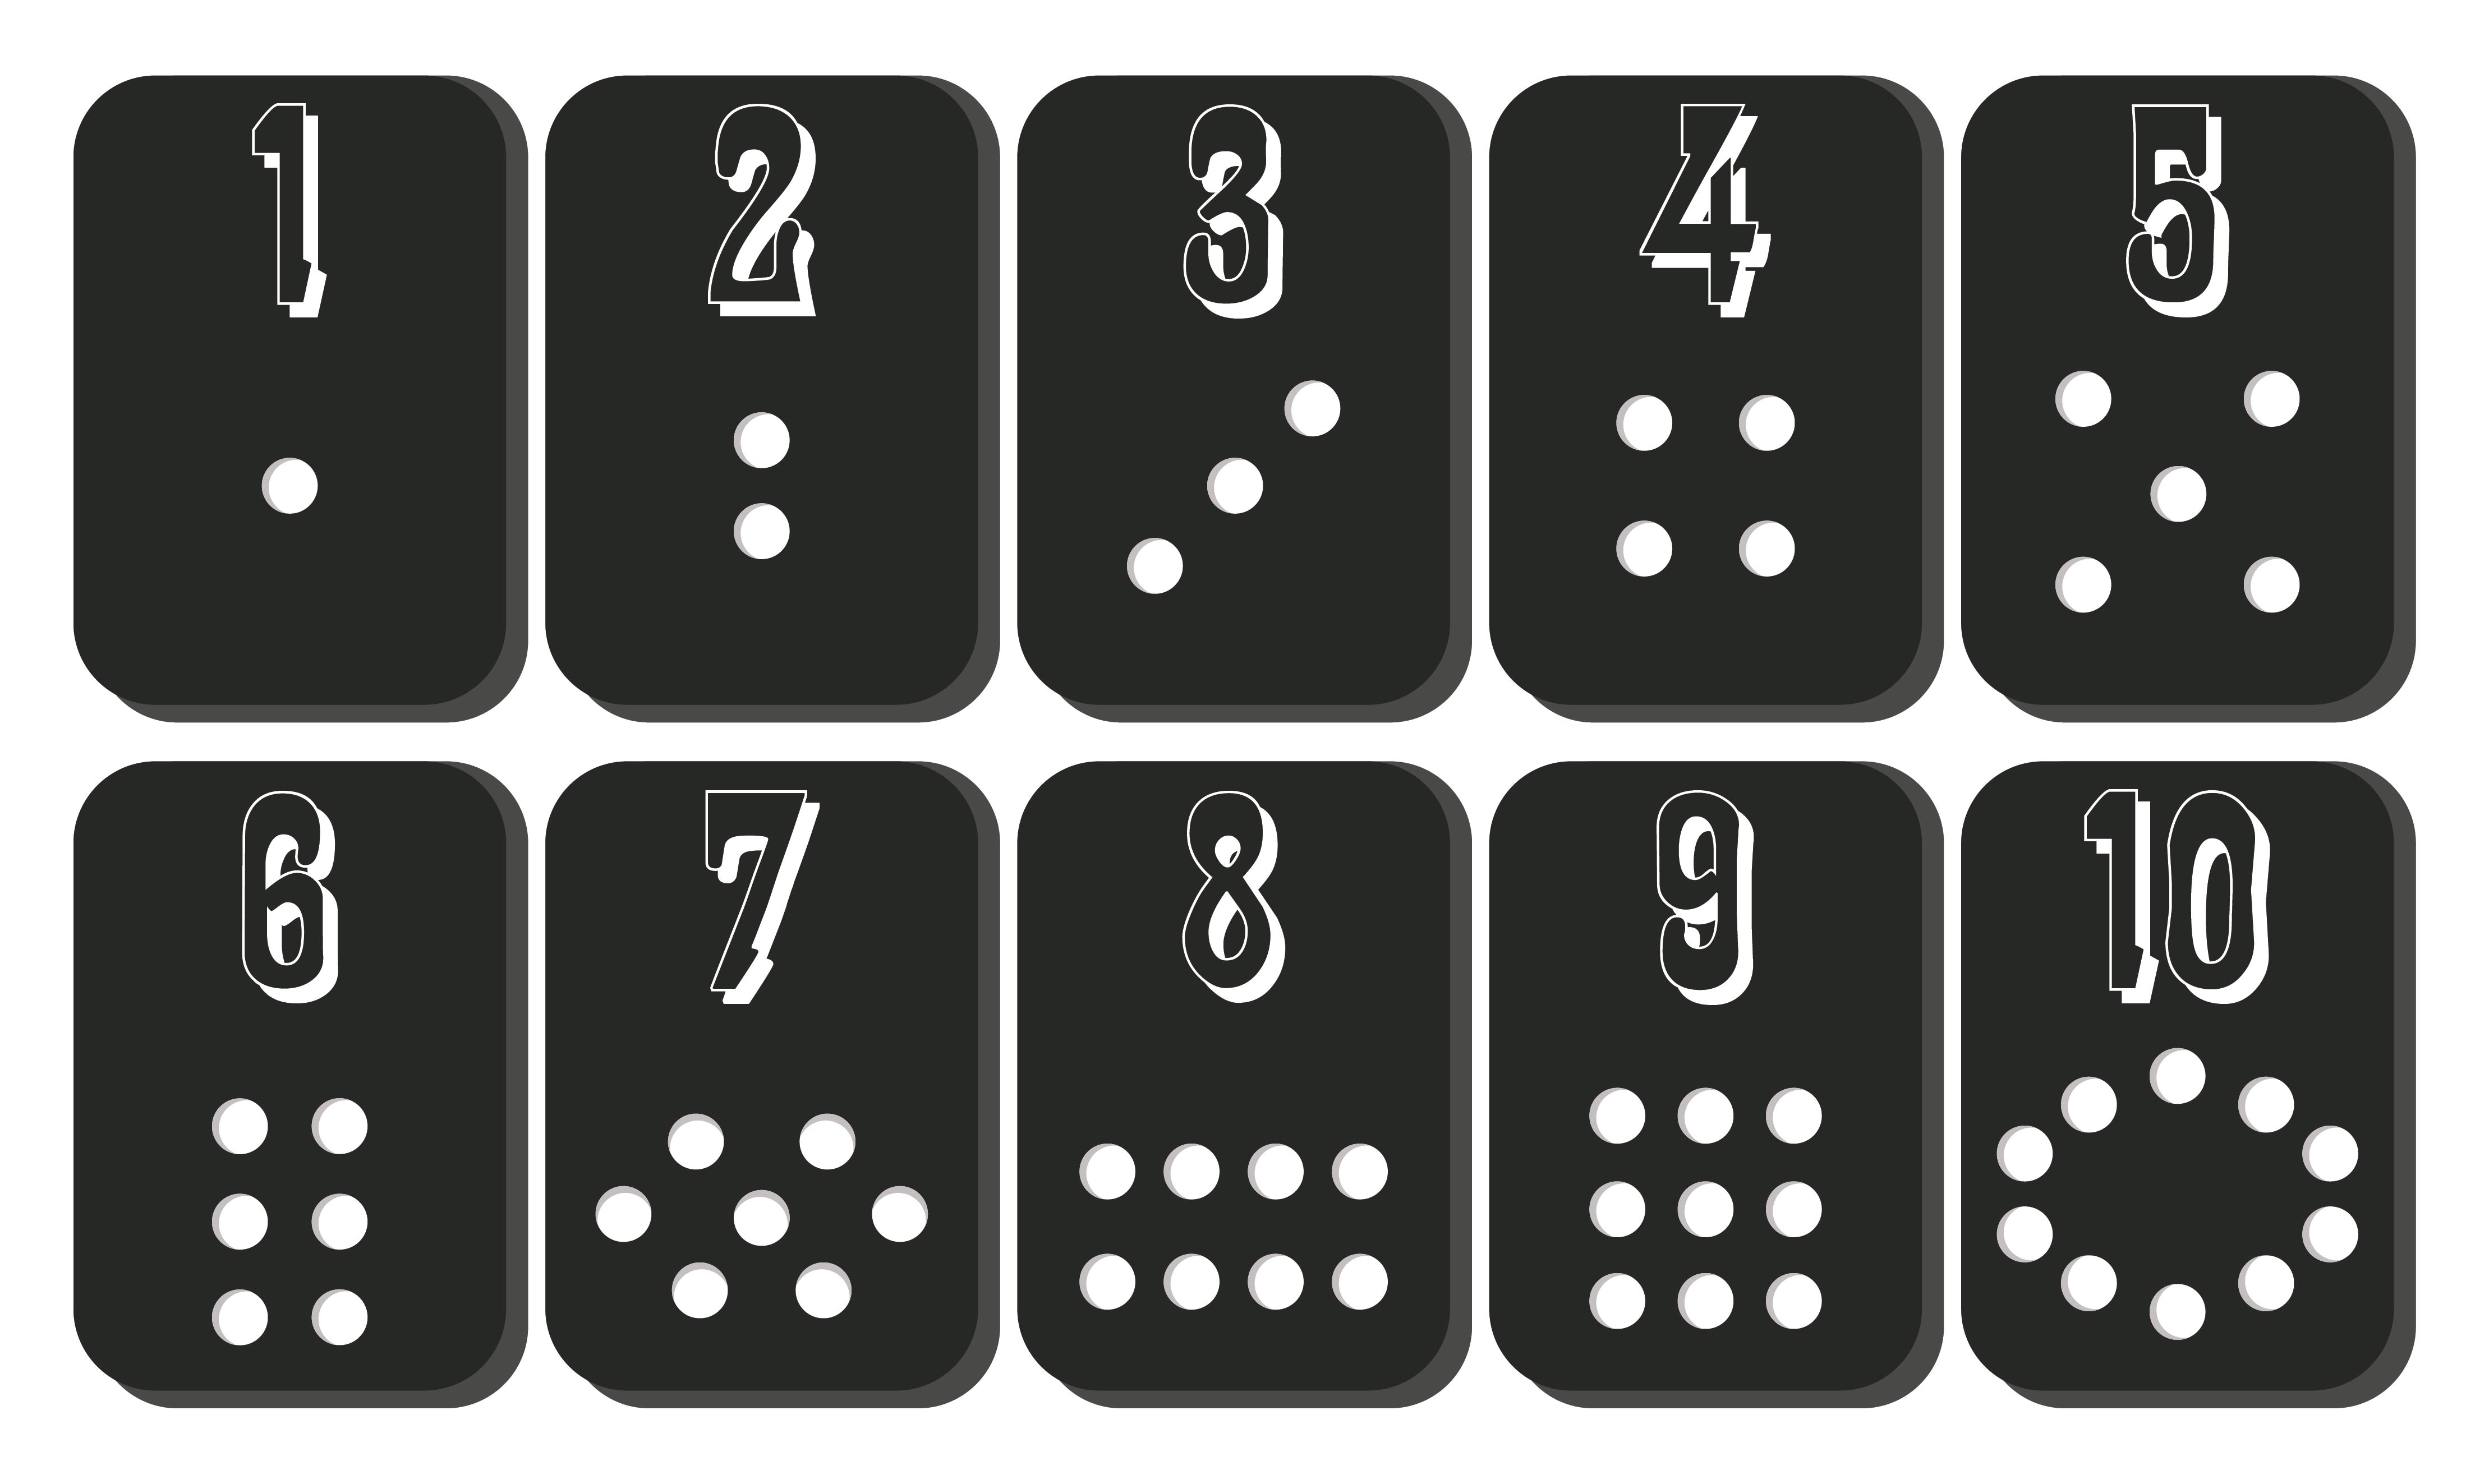 It's just a picture of Astounding Printable Number Cards 1 10